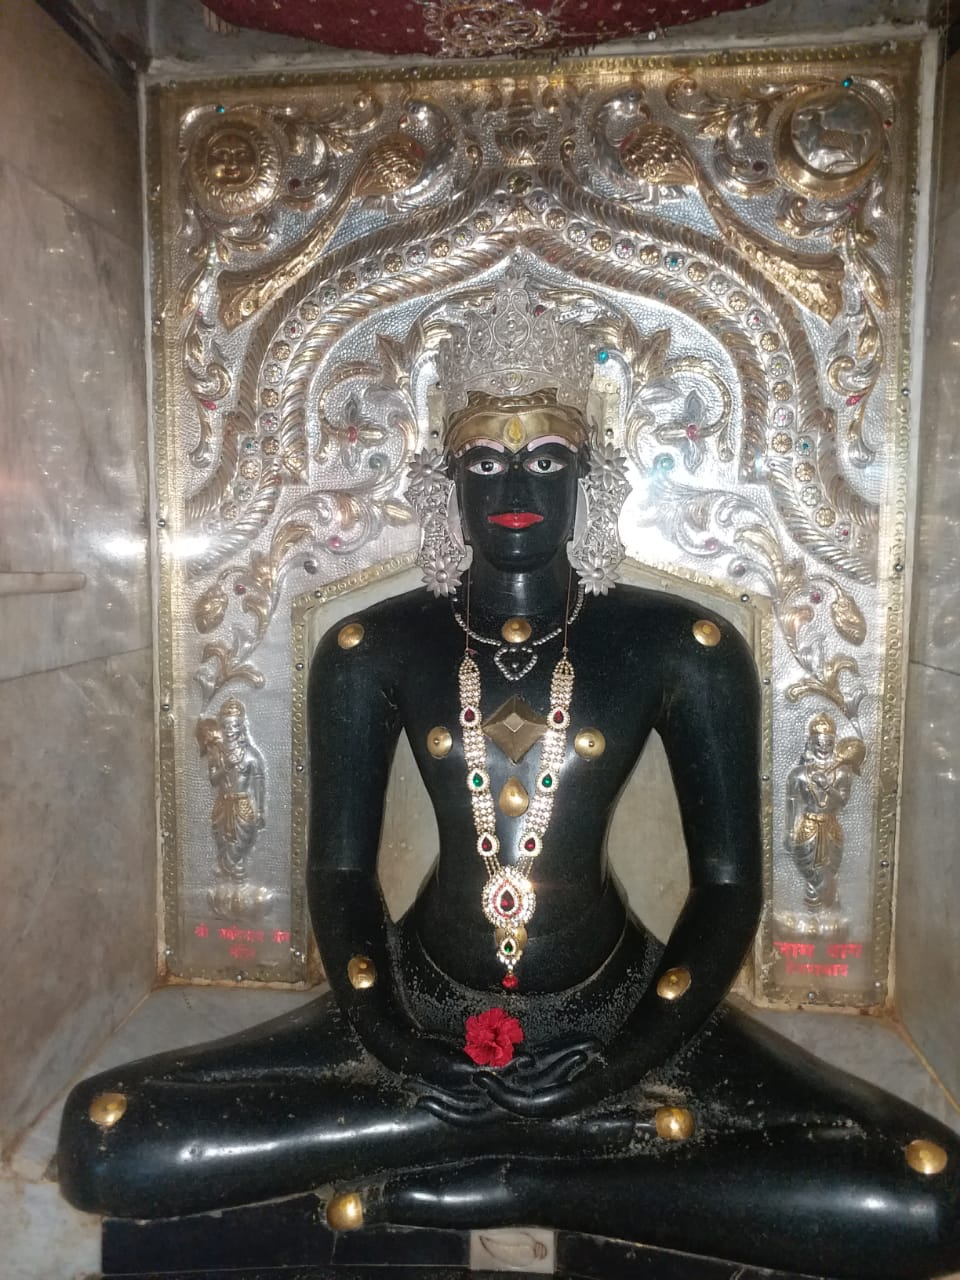 Naminath bhagwan's statue in Kulpakji temple near Hyderabad.